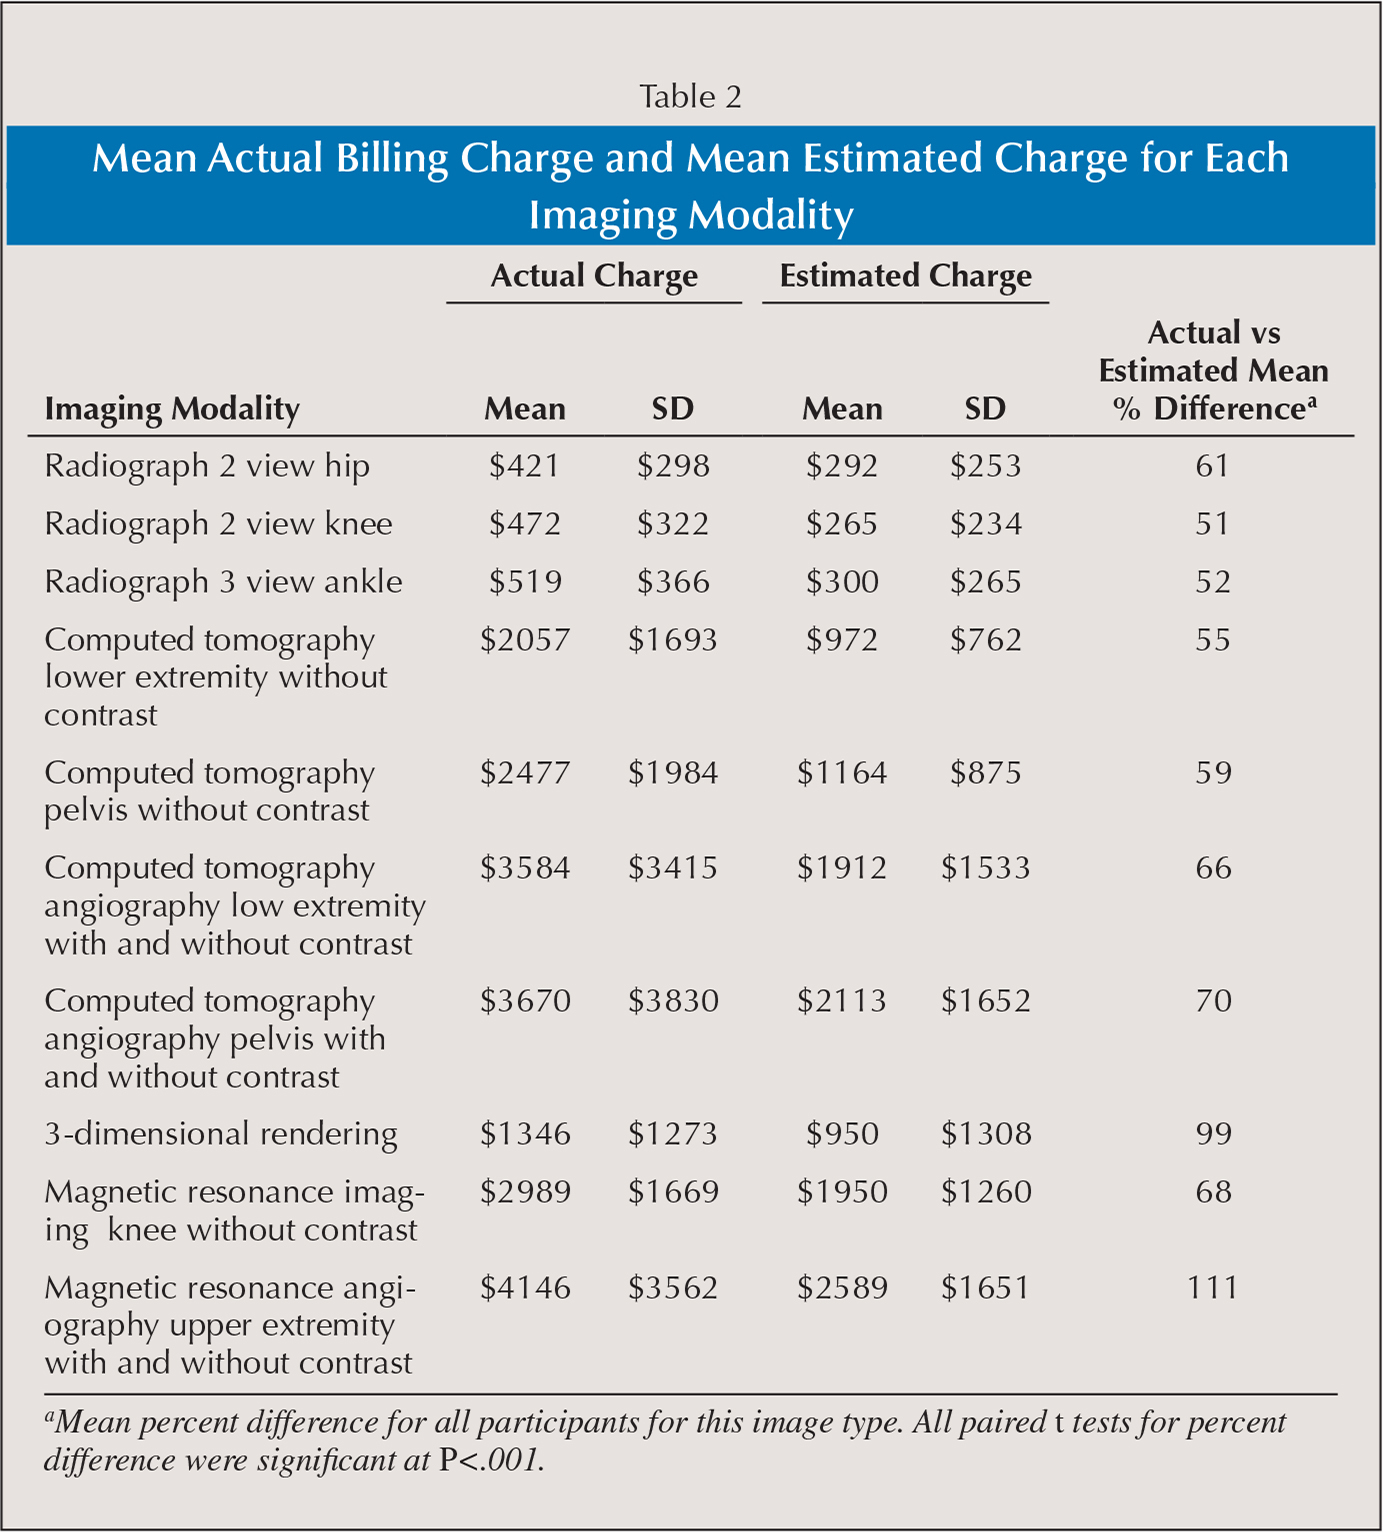 Mean Actual Billing Charge and Mean Estimated Charge for Each Imaging Modality